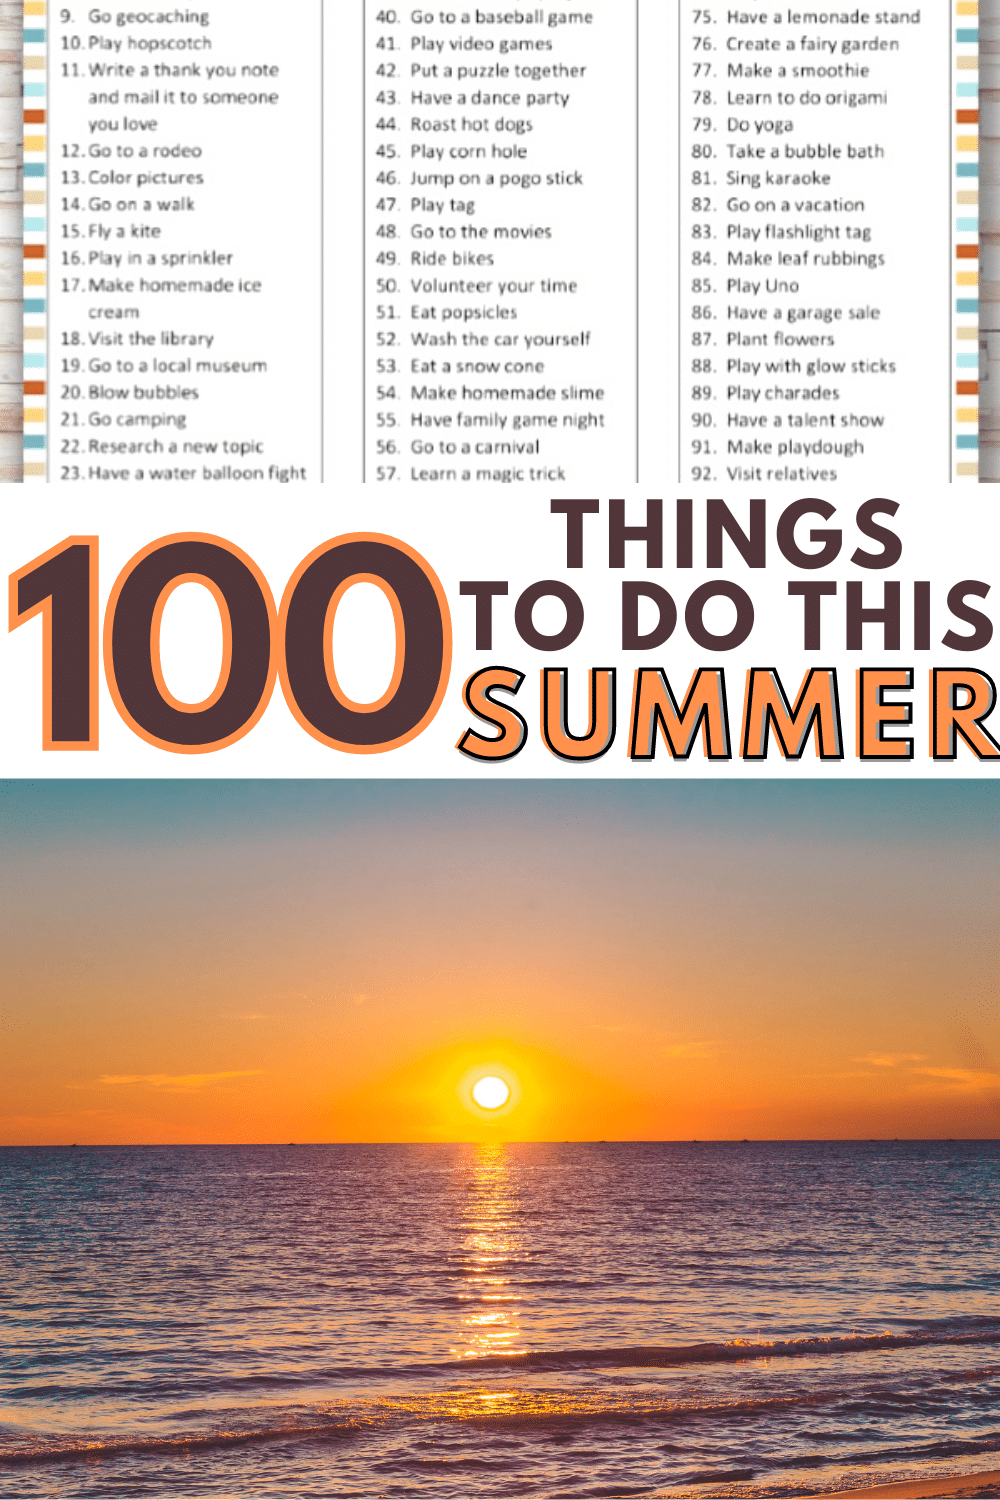 This printable 100 Things To Do This Summer List is a great way to stop boredom during summer months. This huge list of fun activities will keep you busy. #printable #summer #summerfun via @wondermomwannab